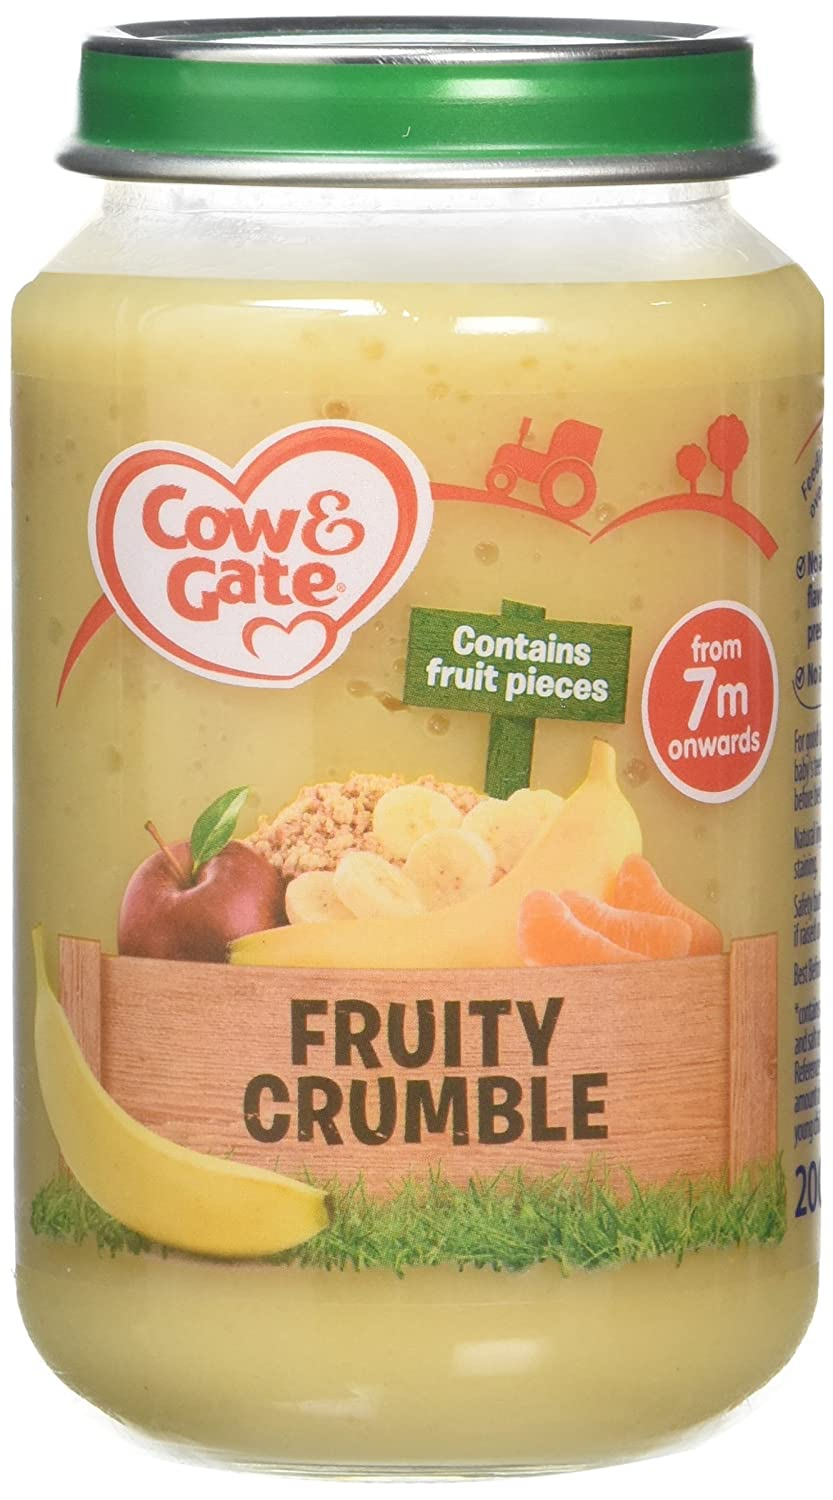 Cow & Gate Fruity Crumble from 7 Months Onwards Baby Food Jar, 200 g Cow and Gate 108157464